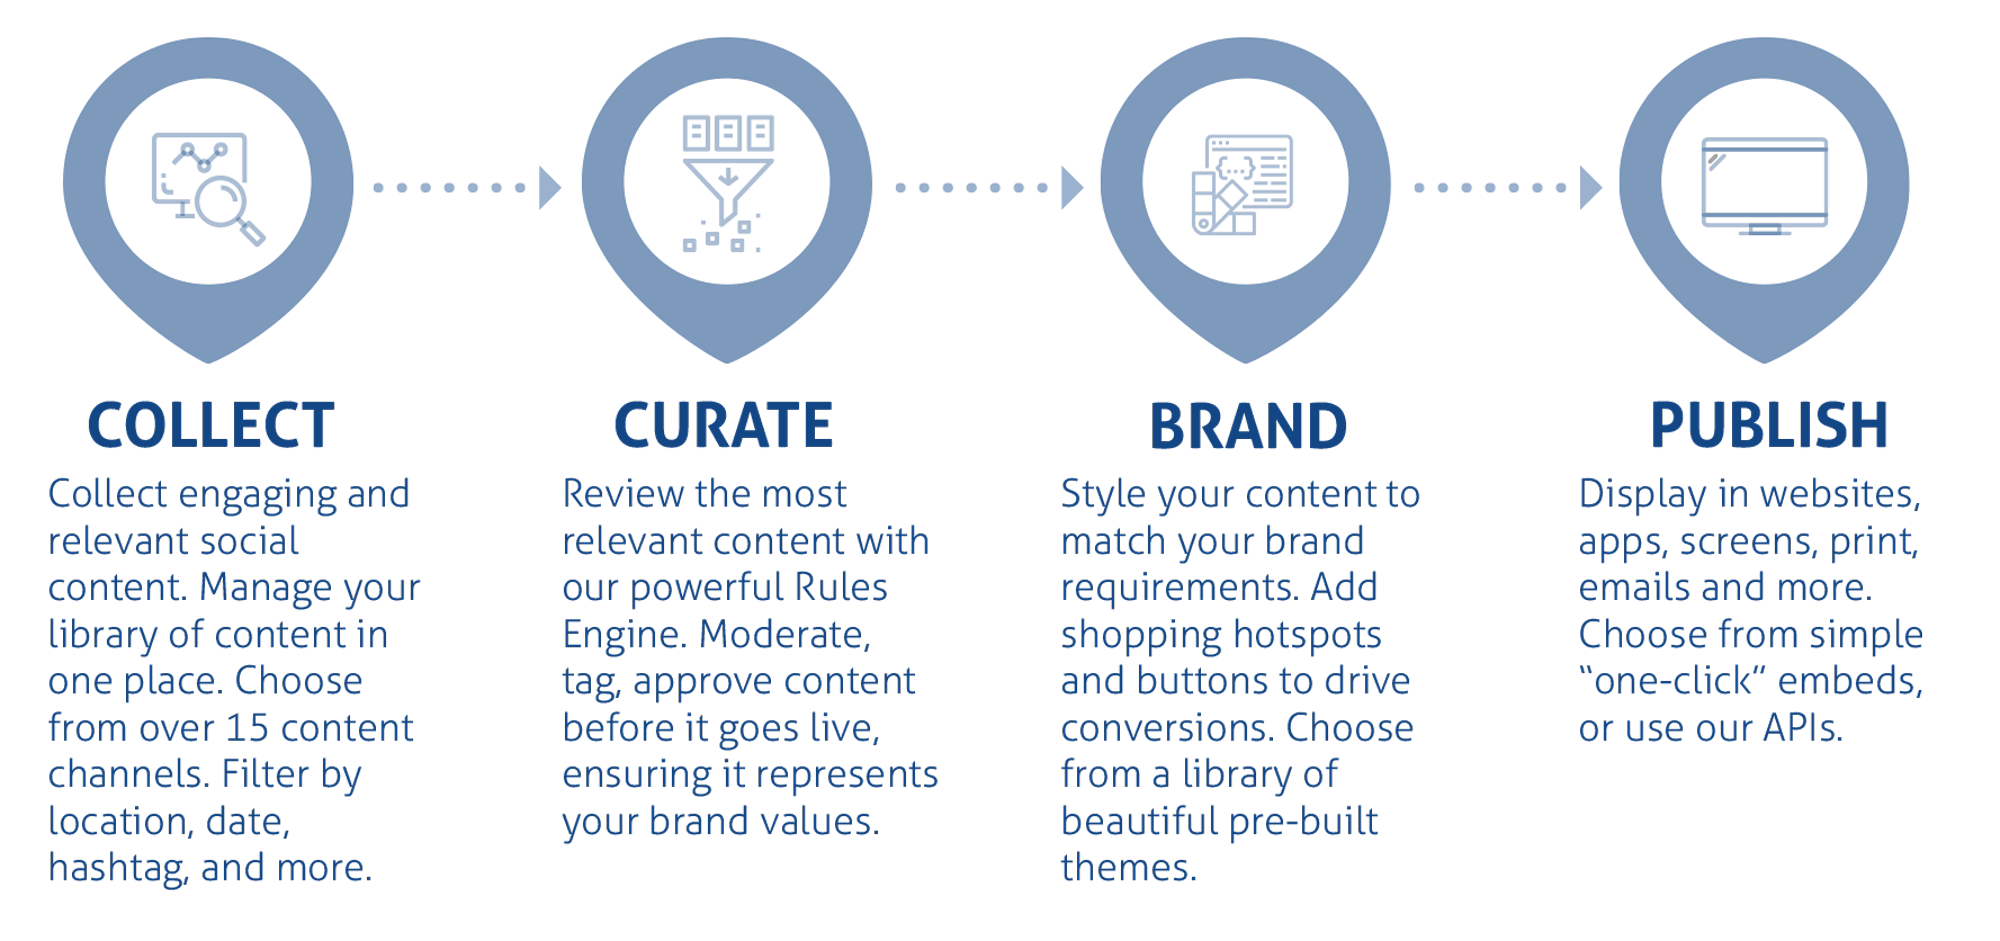 ugc solutions for marketers